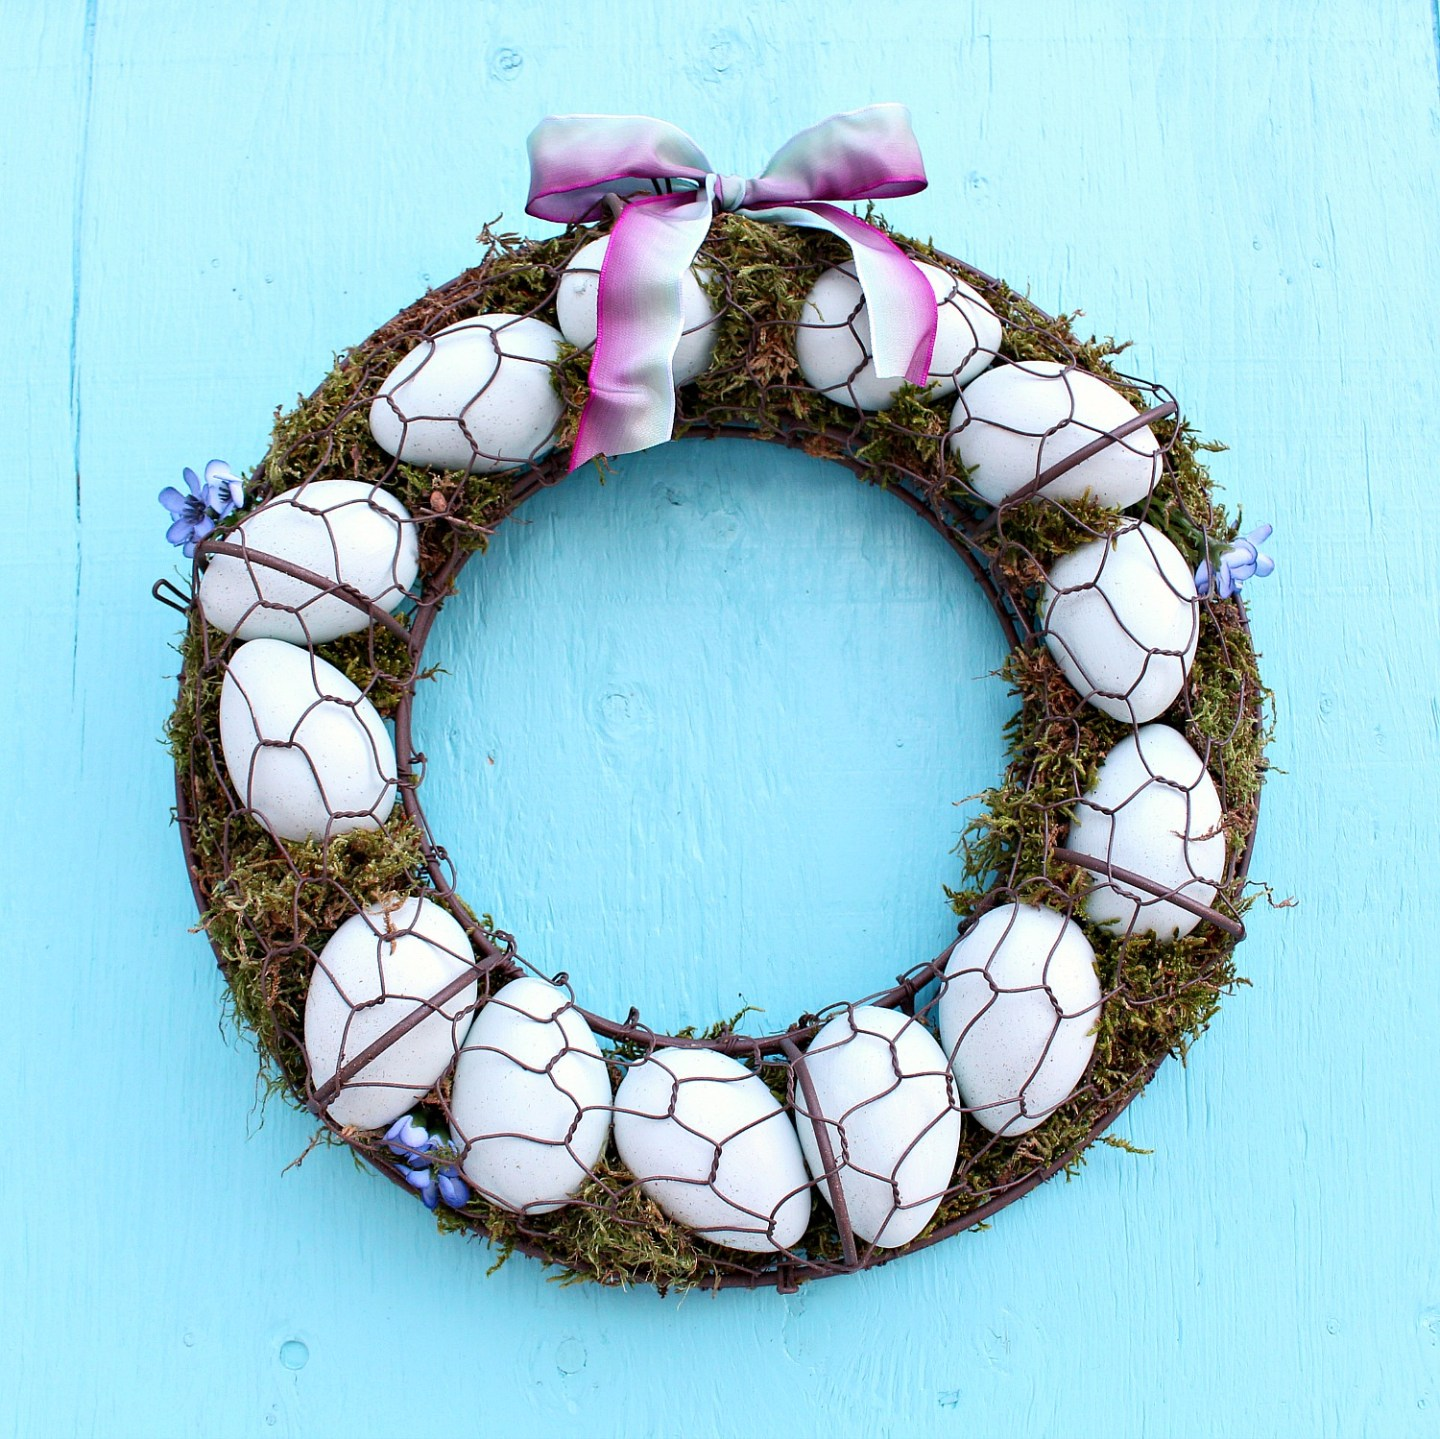 Turquoise Egg Wreath for Spring